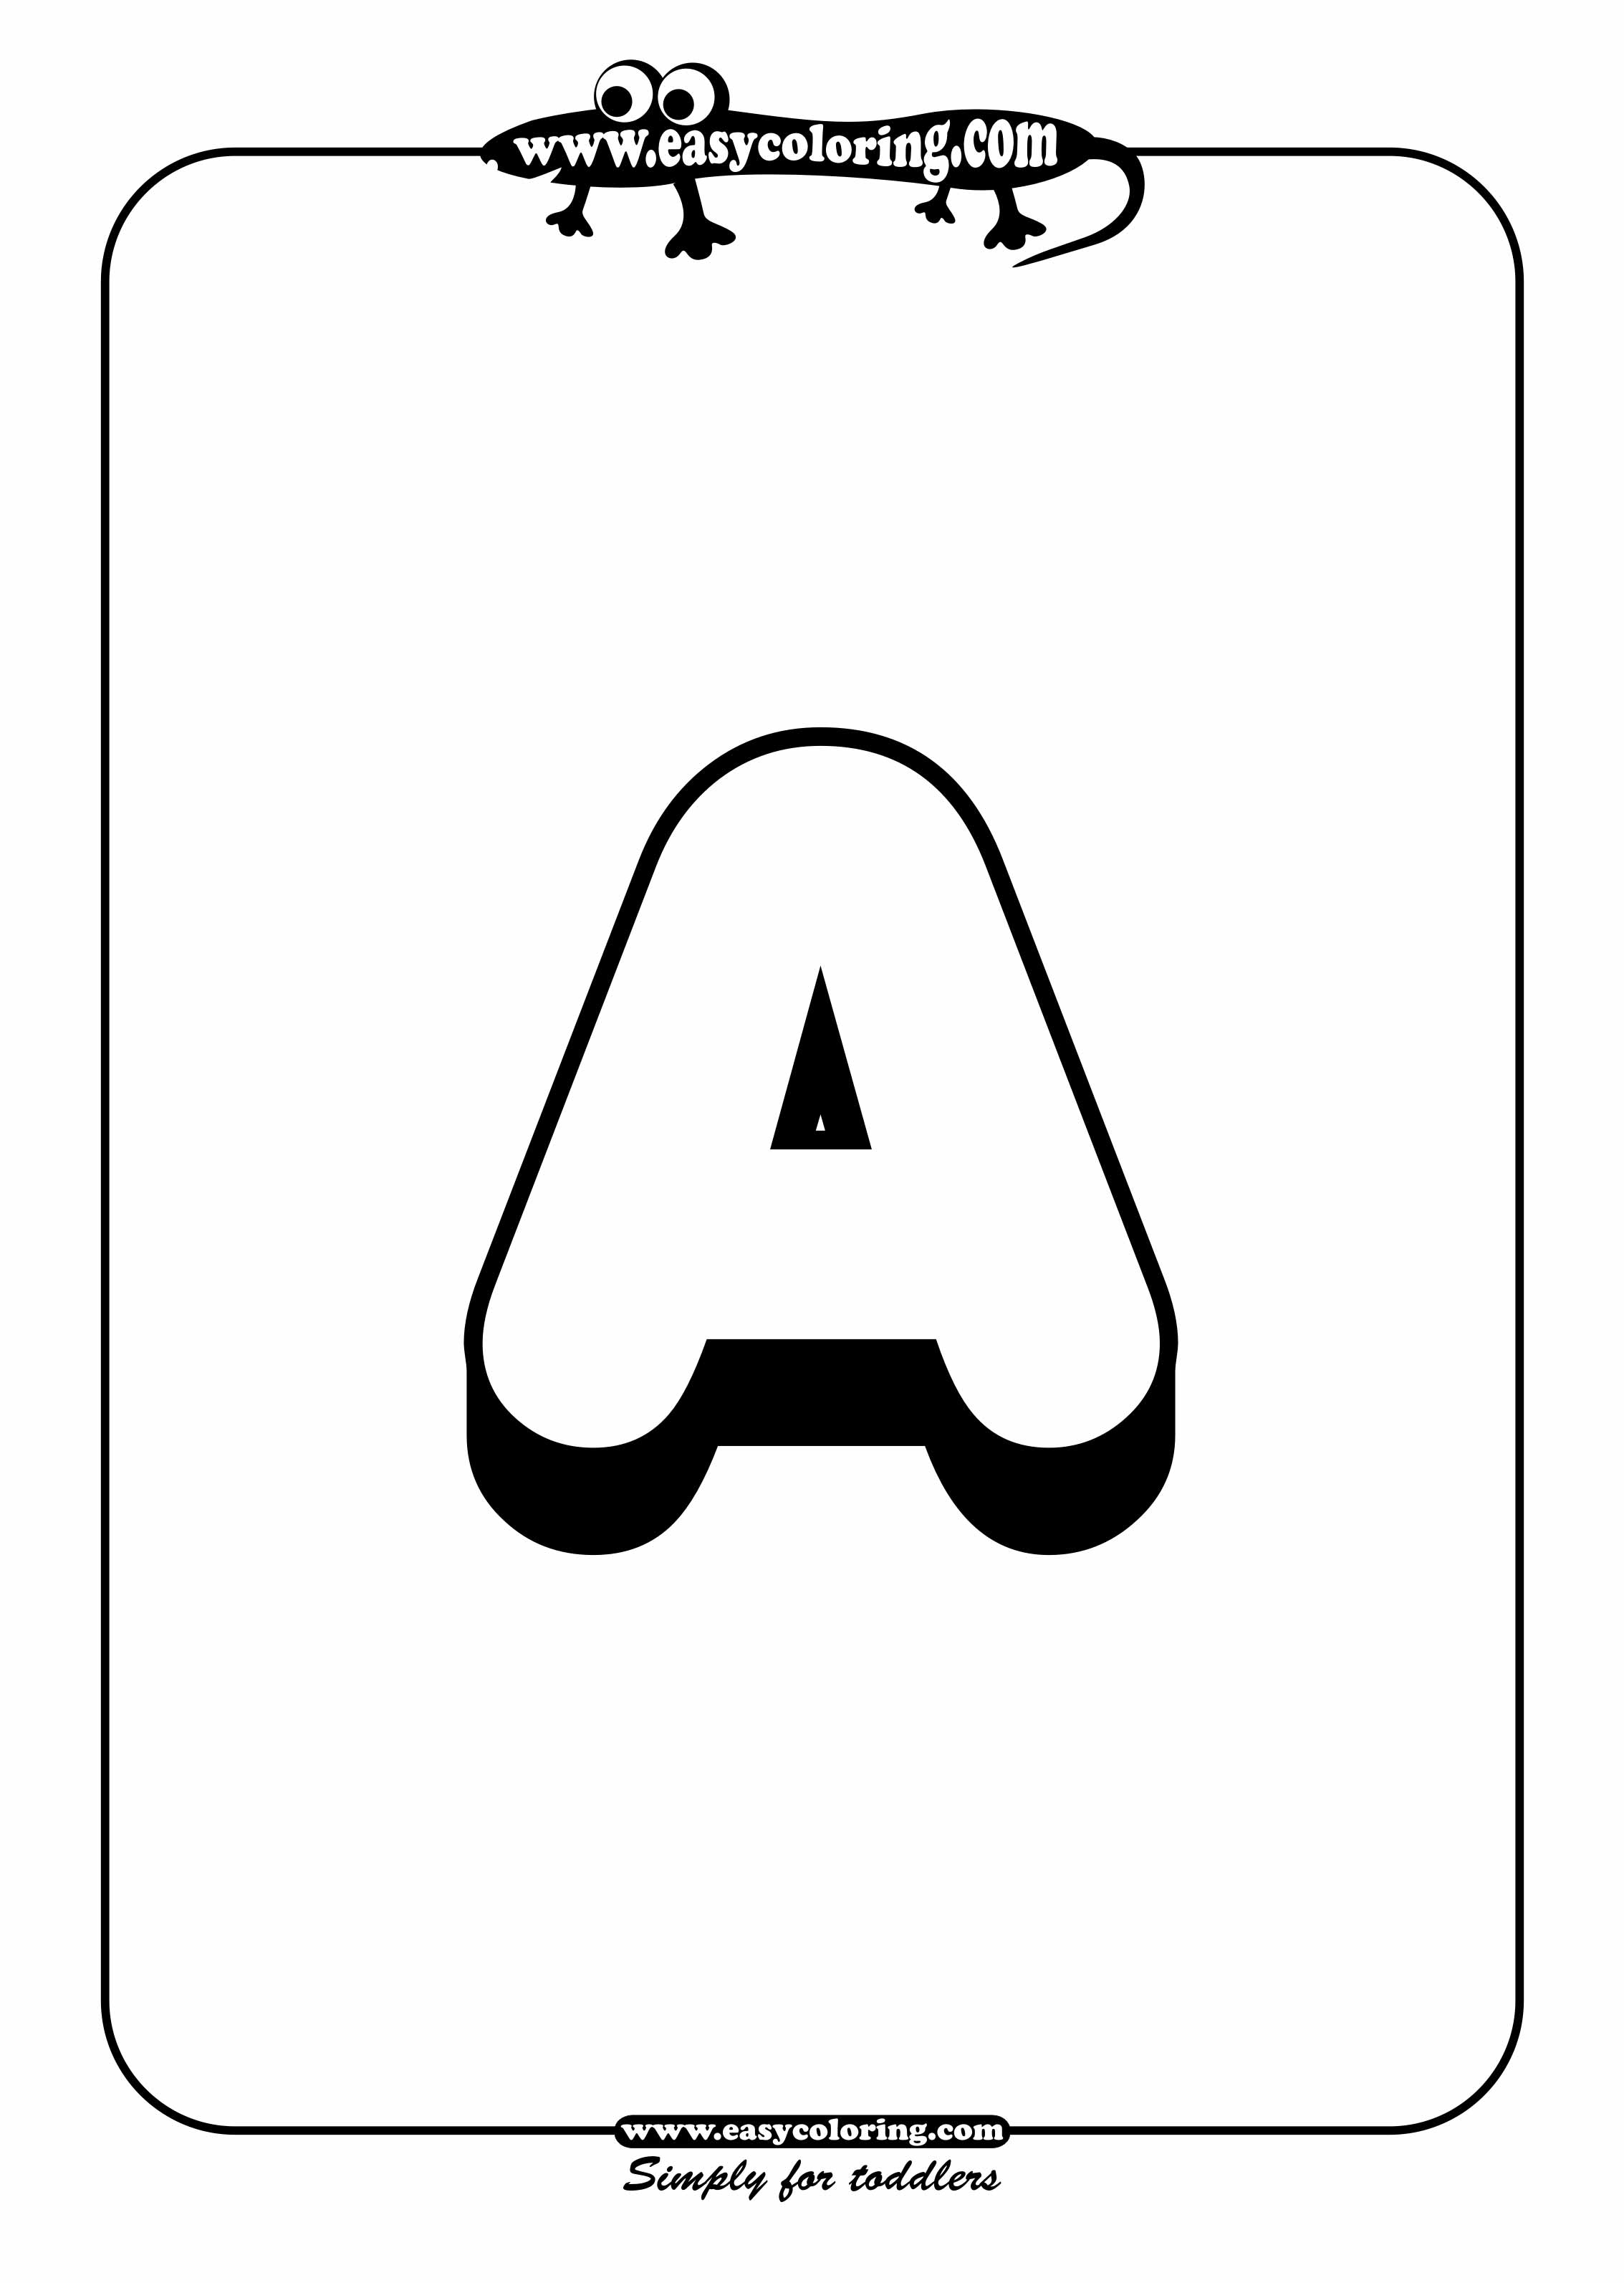 alphabet letters to color and print big letter a easy coloring